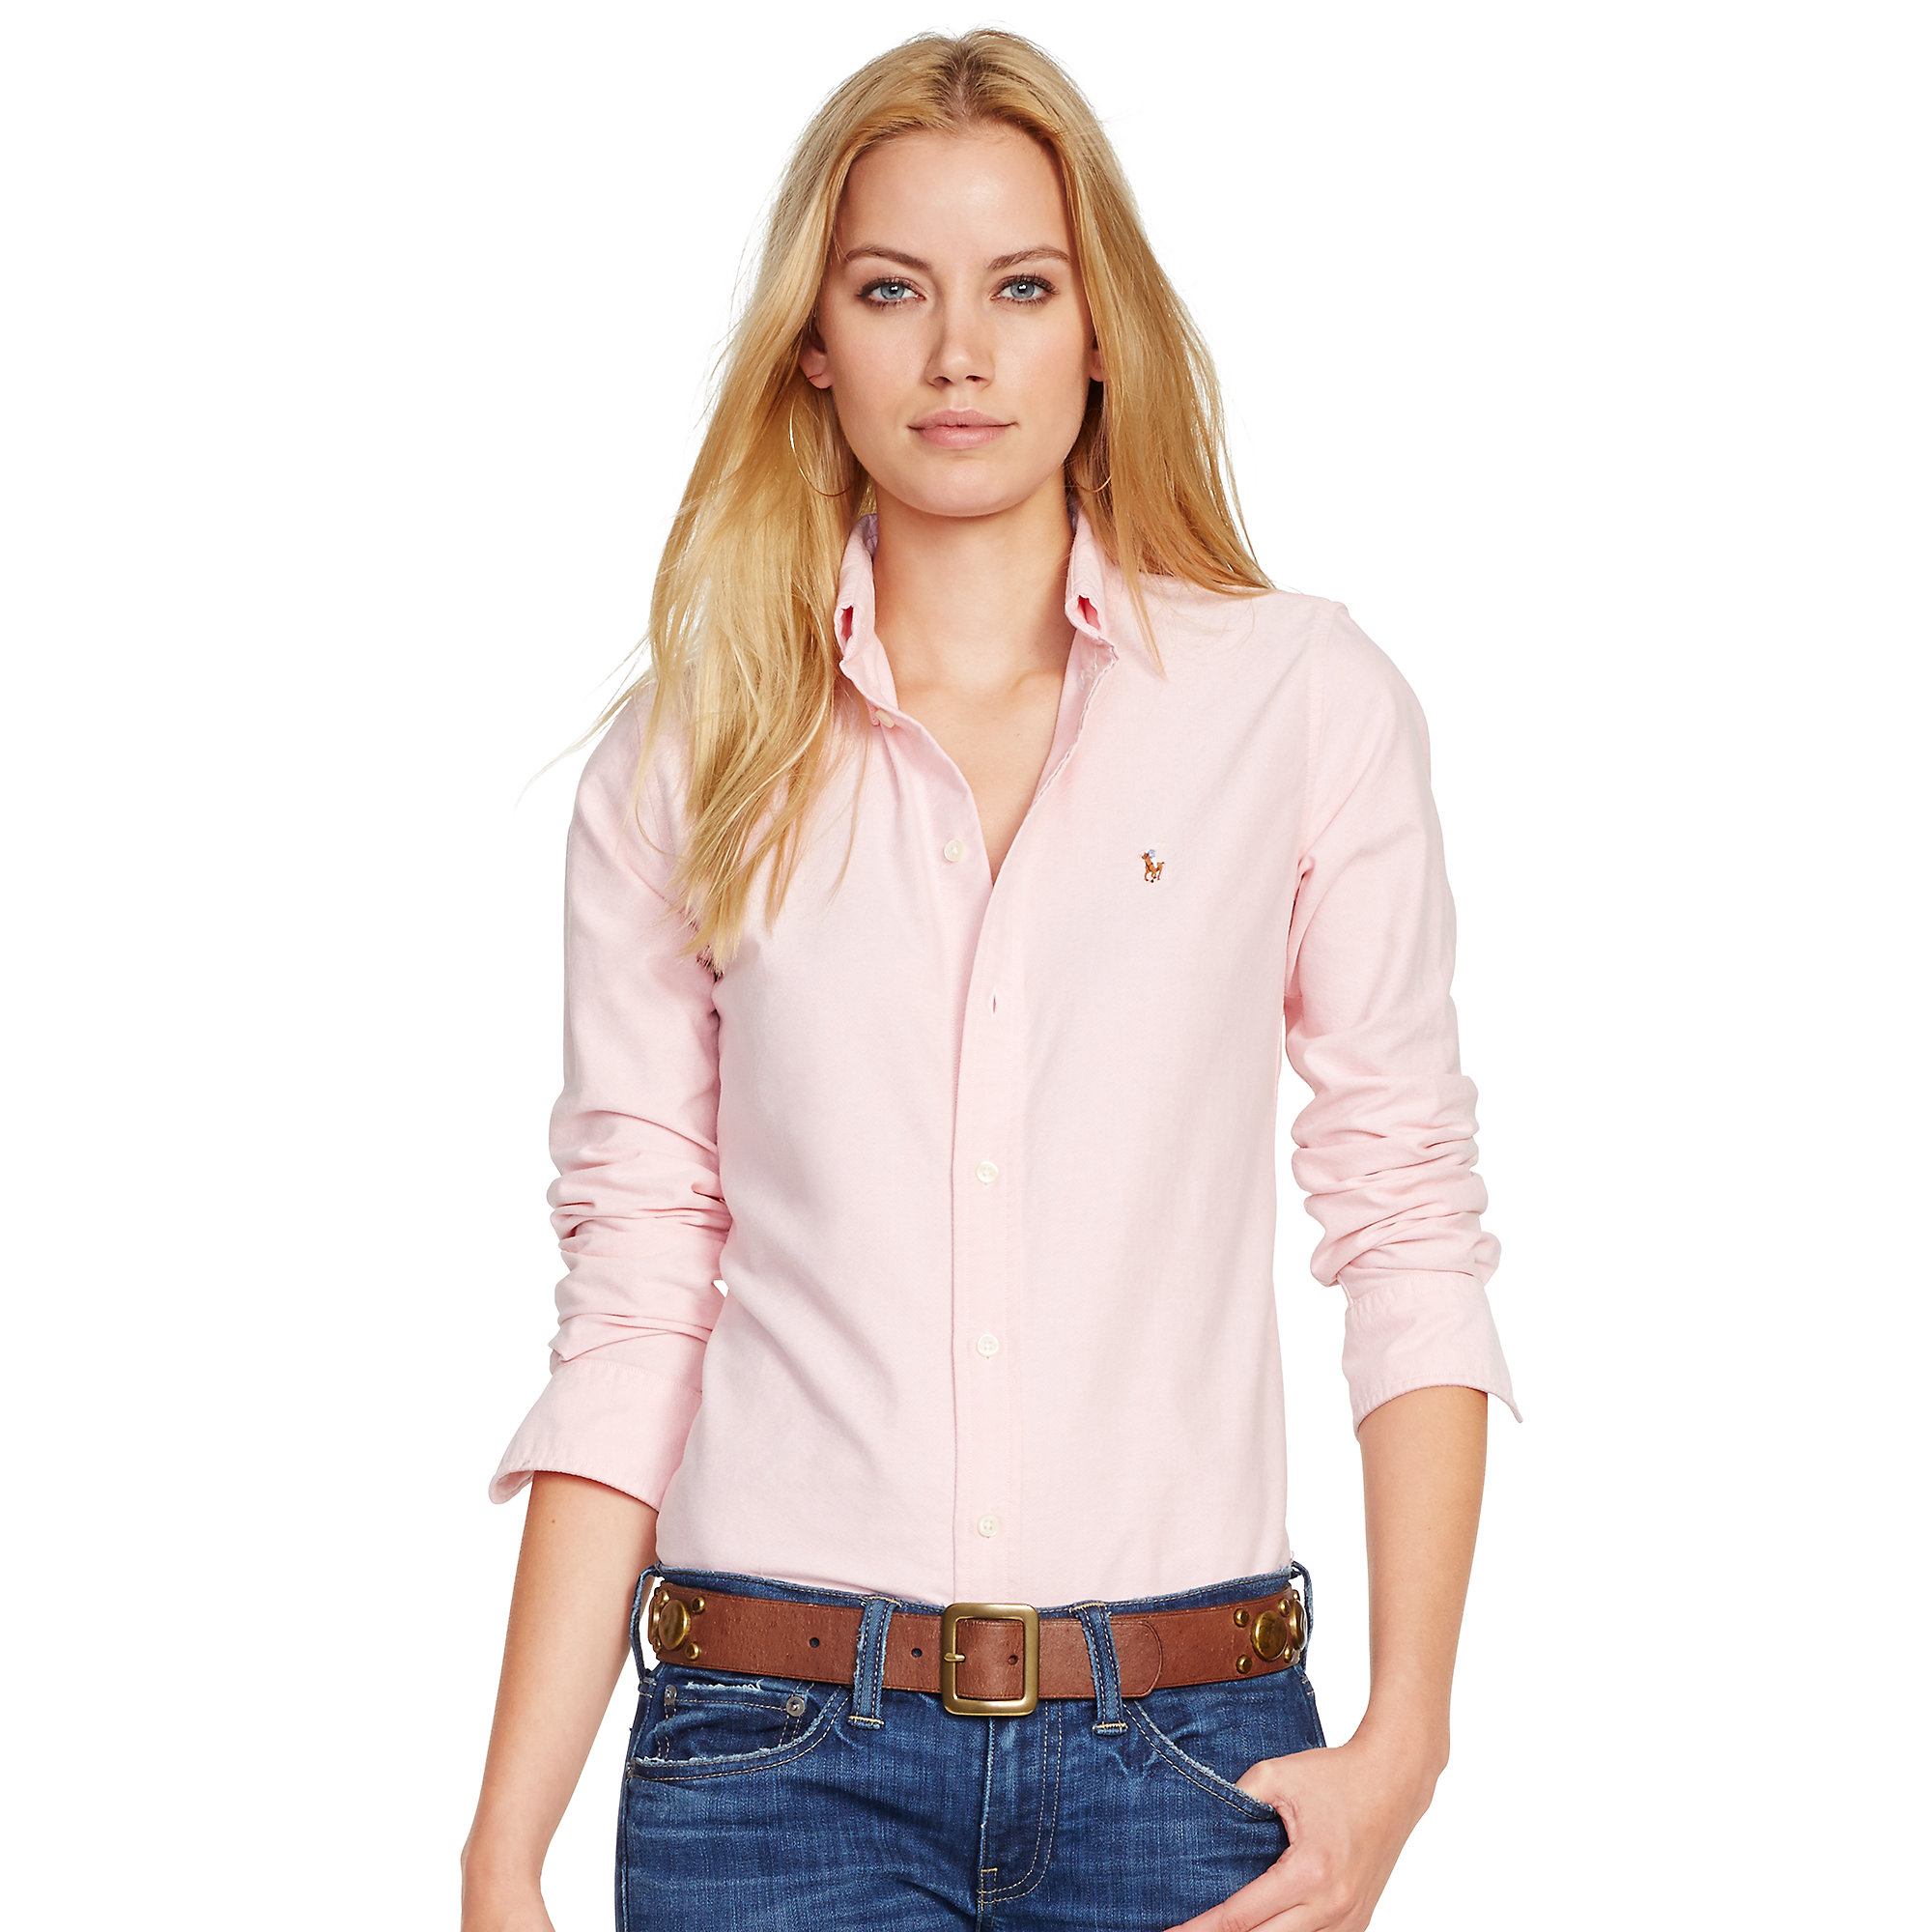 Polo ralph lauren Custom-fit Oxford Shirt in Pink | Lyst